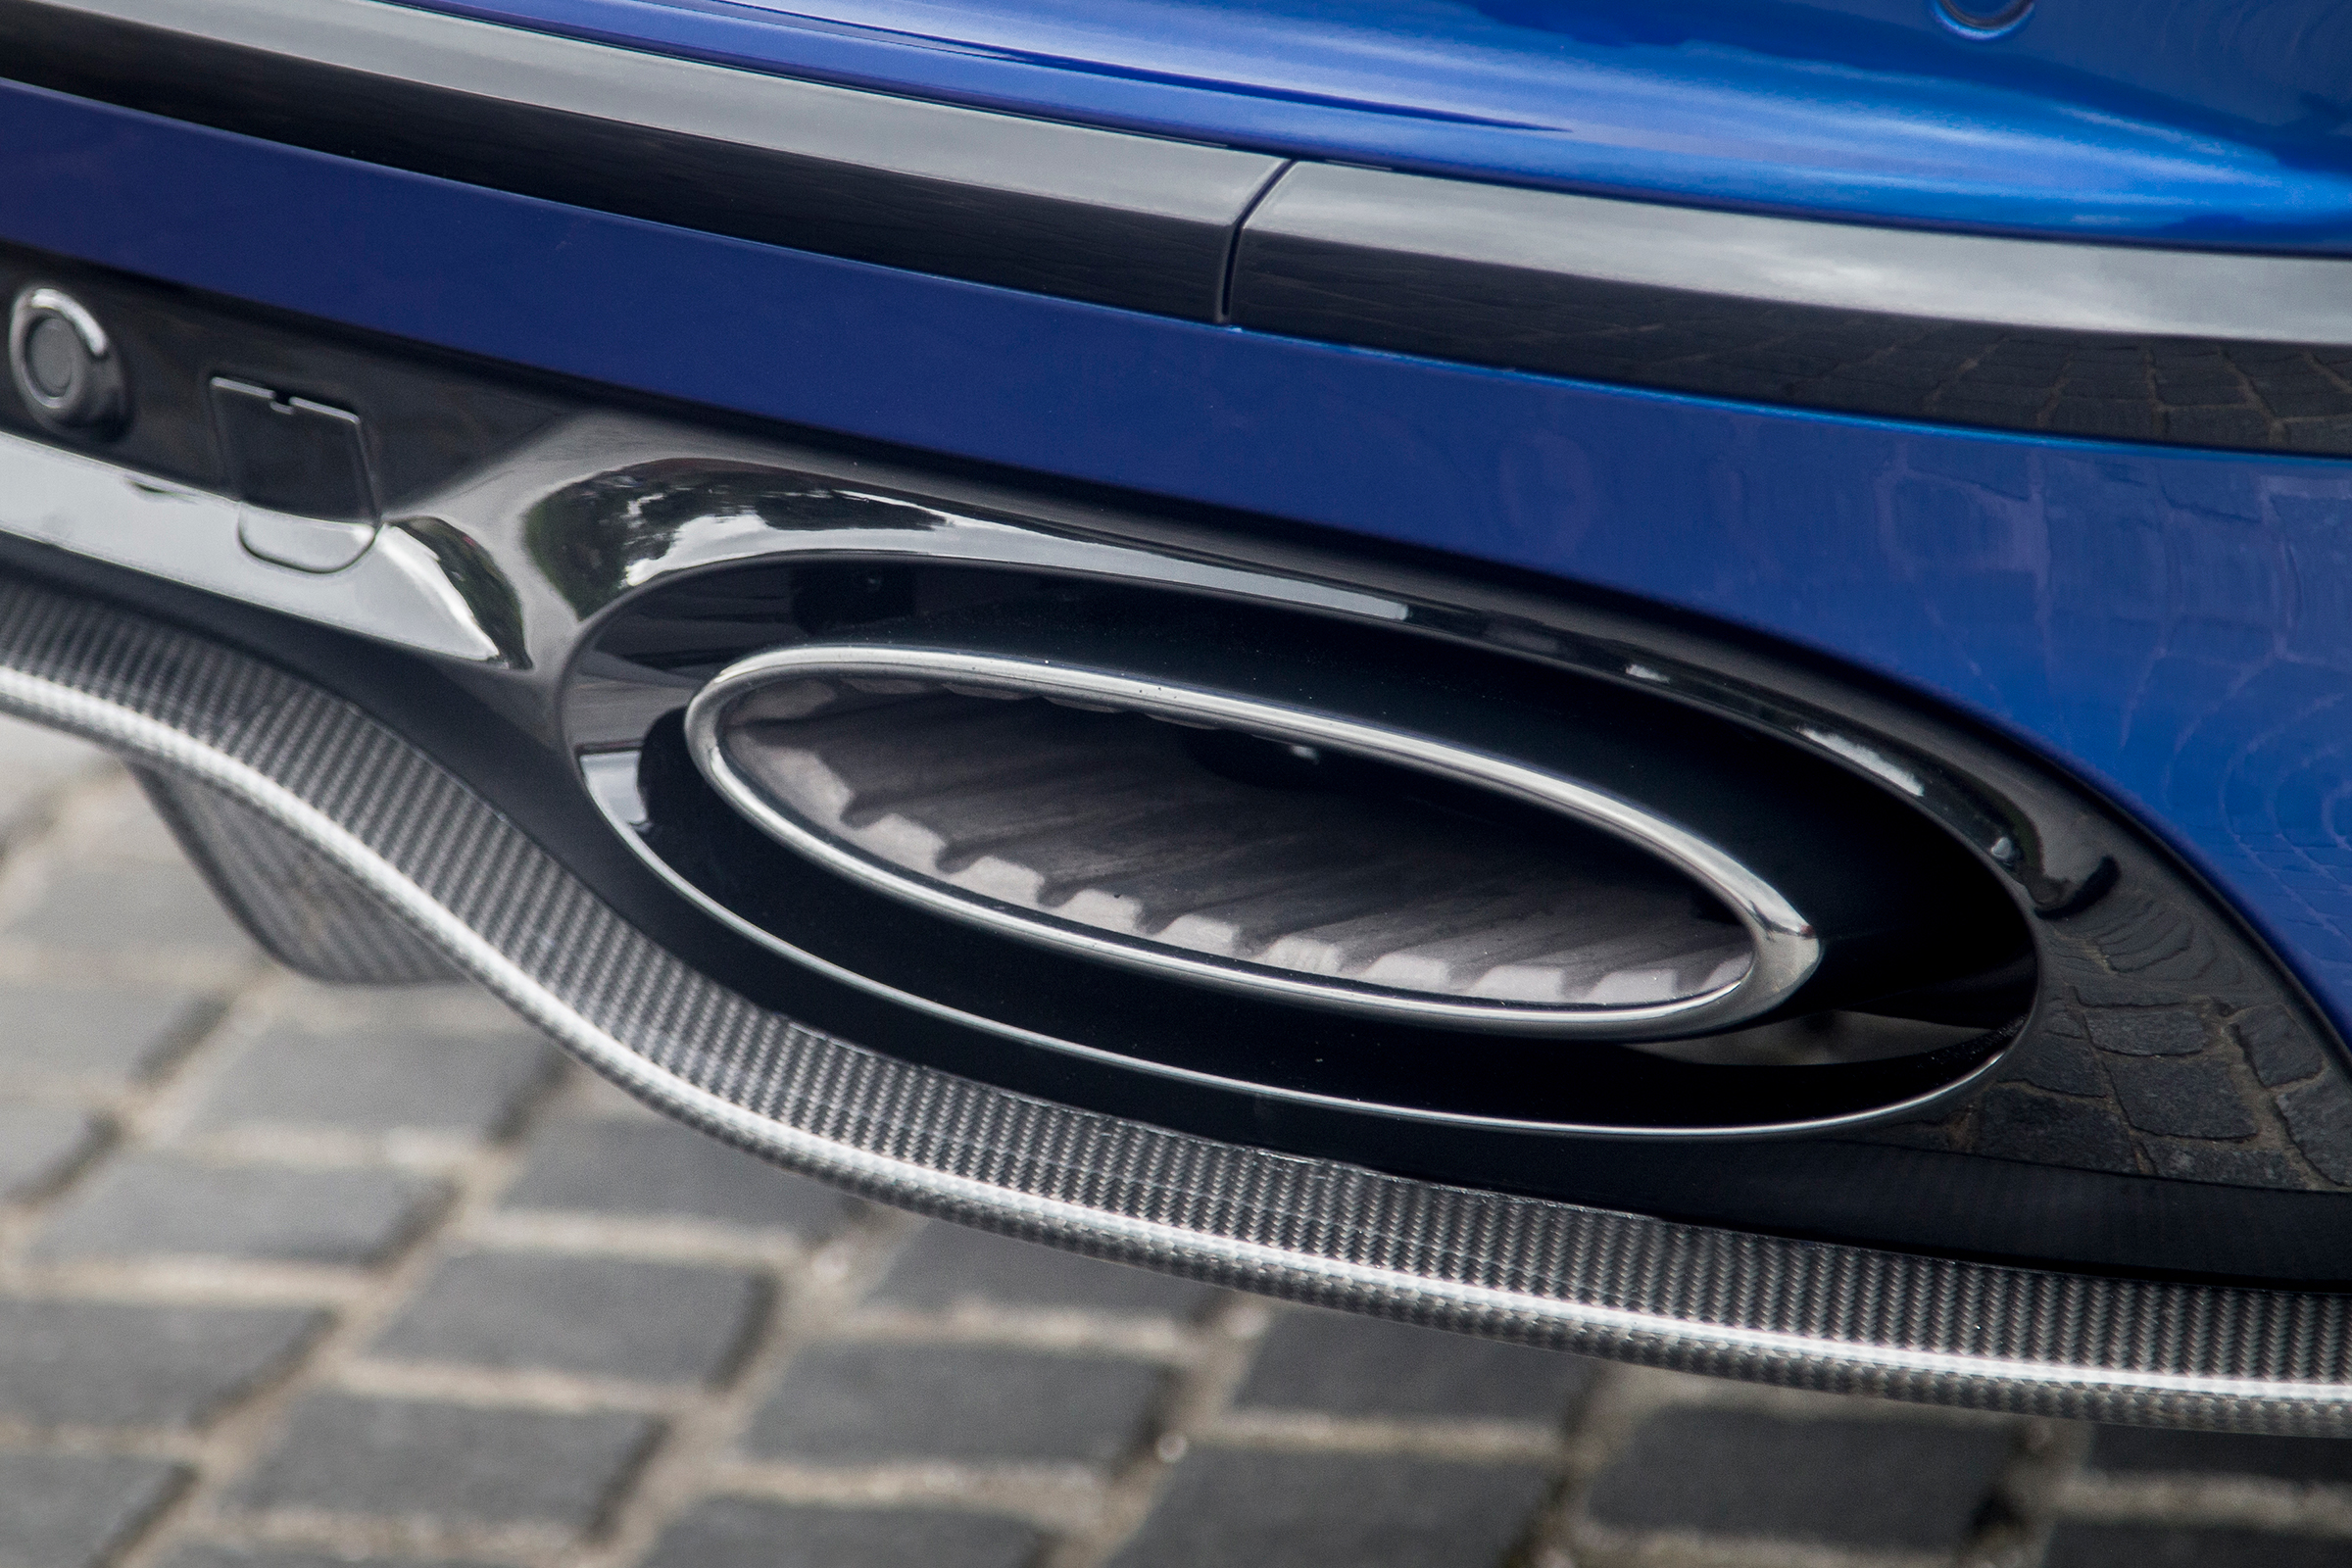 2017 Bentley Continental Supersports Blue Exterior View Exhaust Muffler (Photo 16 of 31)